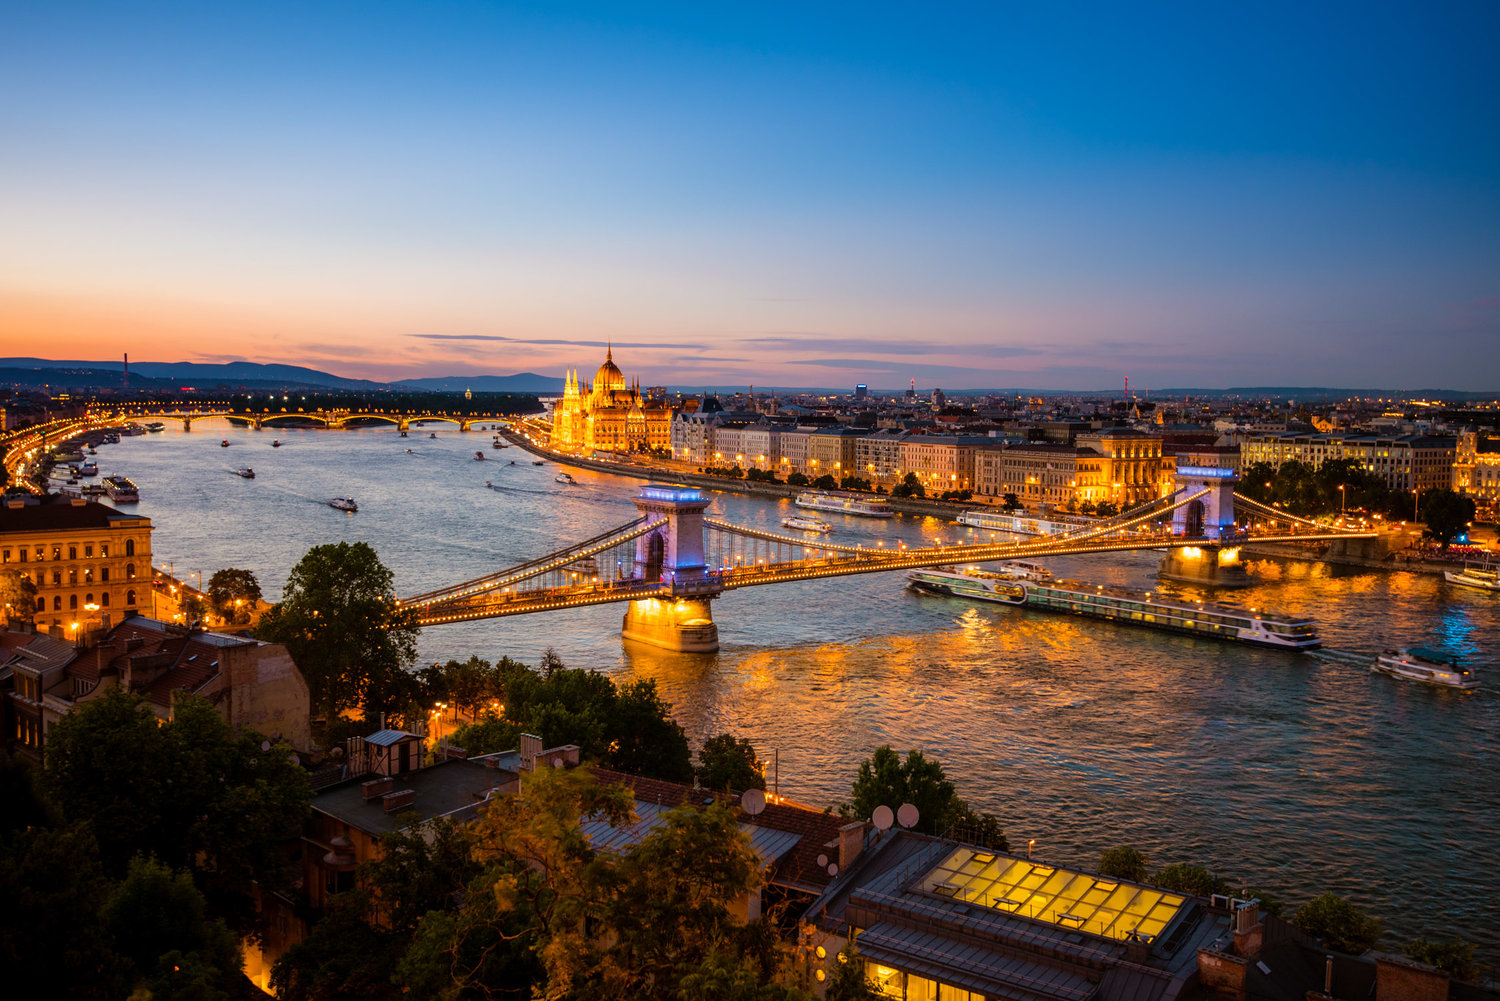 The Grand European River Cruise with Viking Cruises